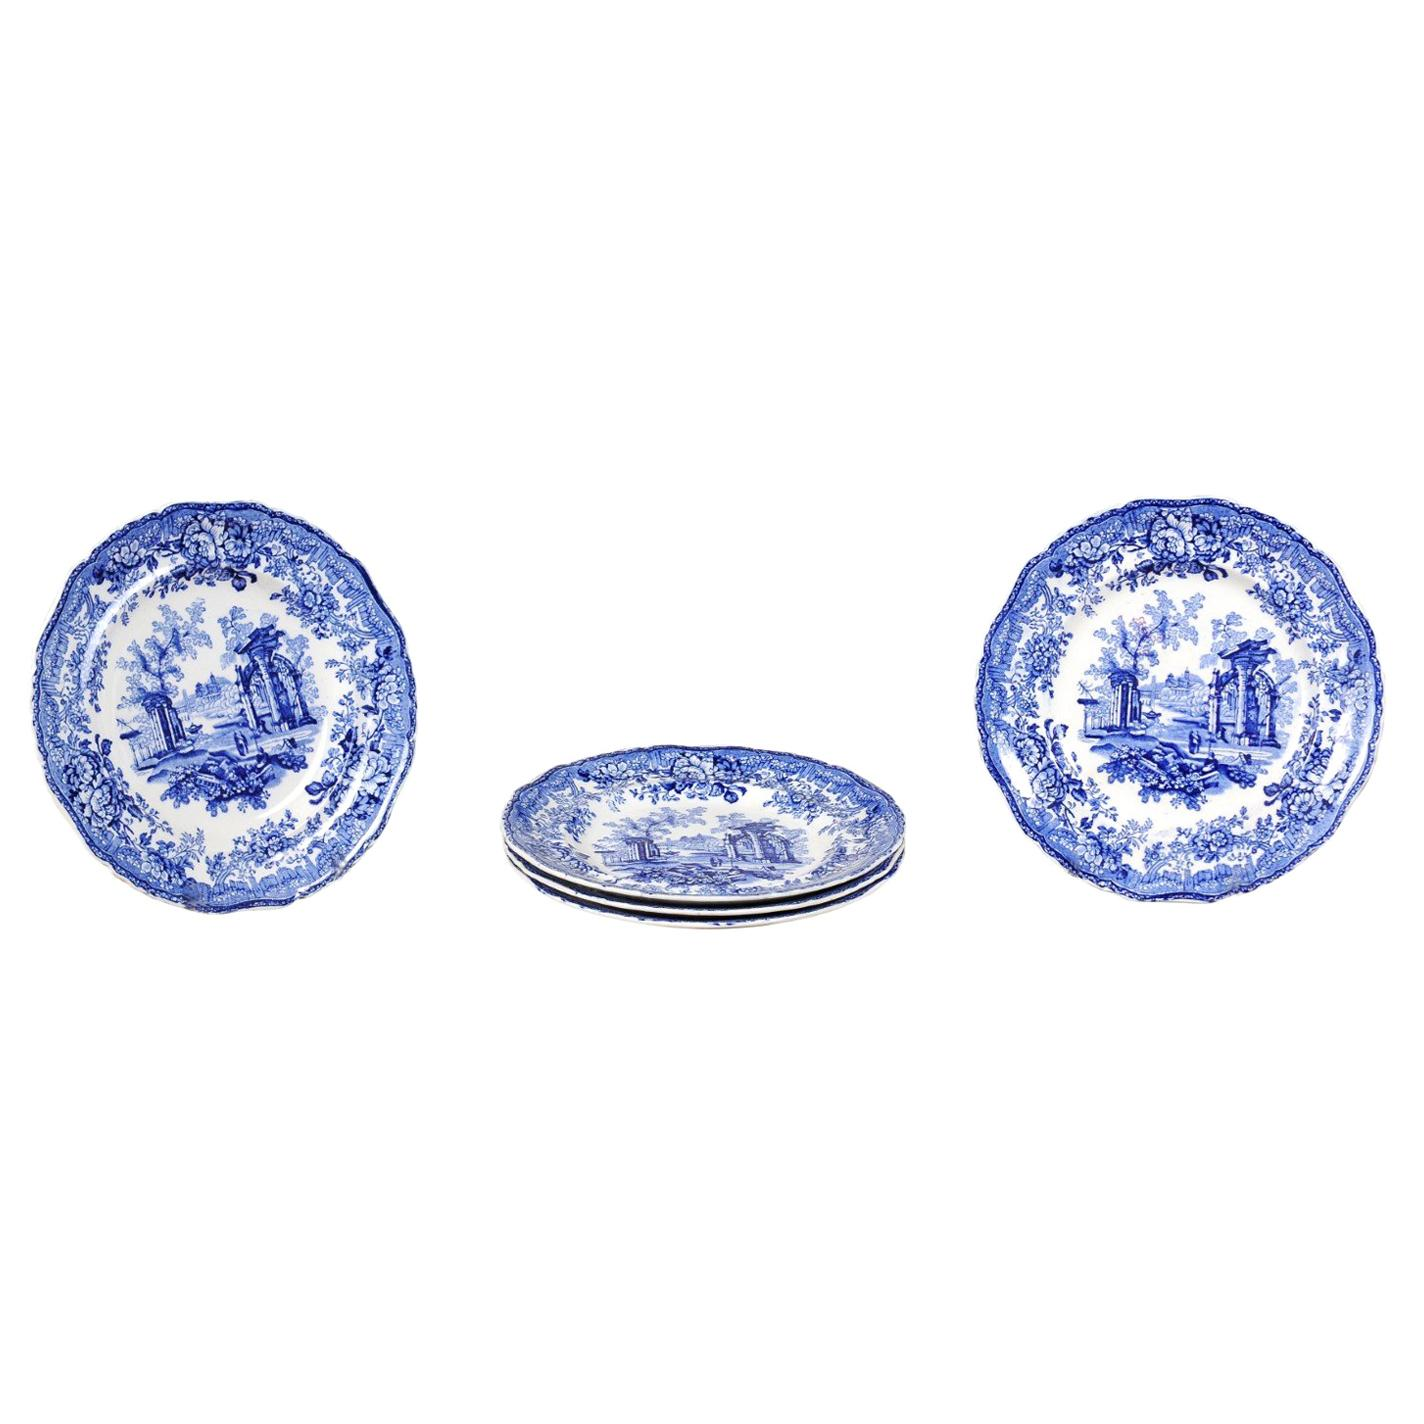 English 19th Century Transfer Blue and White Plates with Ruins and Floral Décor